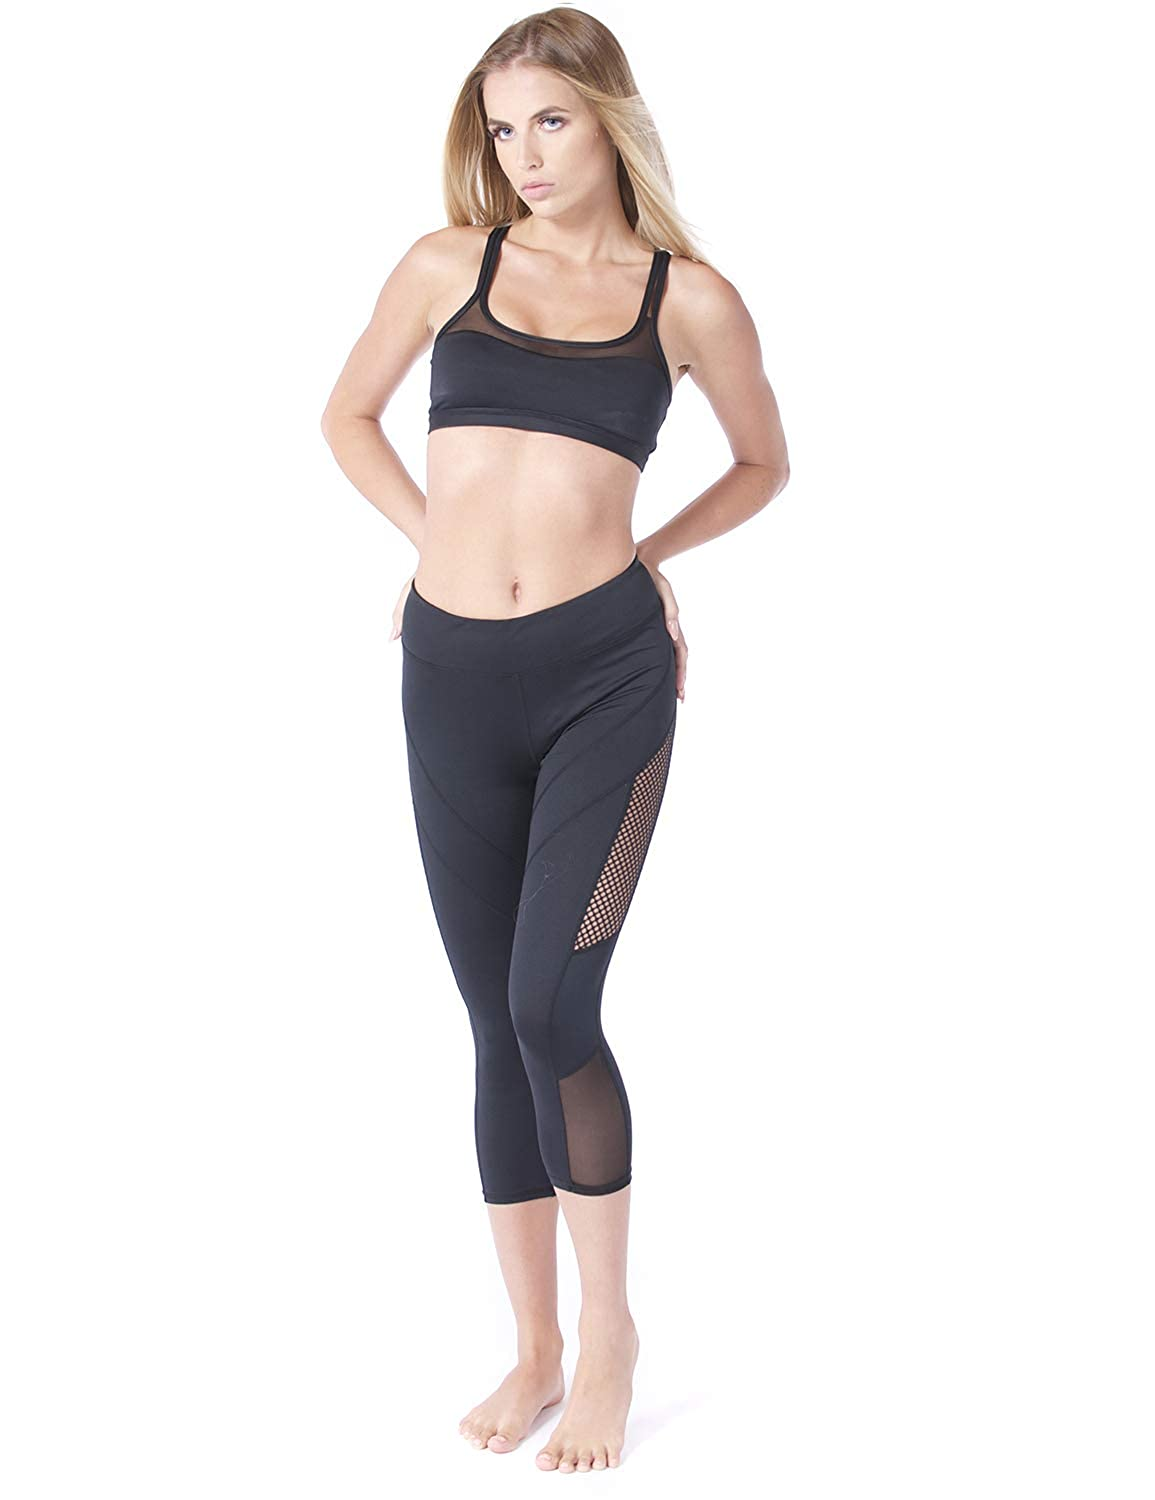 94b58bbd950fc Mapletina Women Sports Bra and Legging One Set Strappy Wireless Padded Mesh  Bra Stretchy Perforated Mesh Capri Leggings (XS) at Amazon Women's Clothing  ...